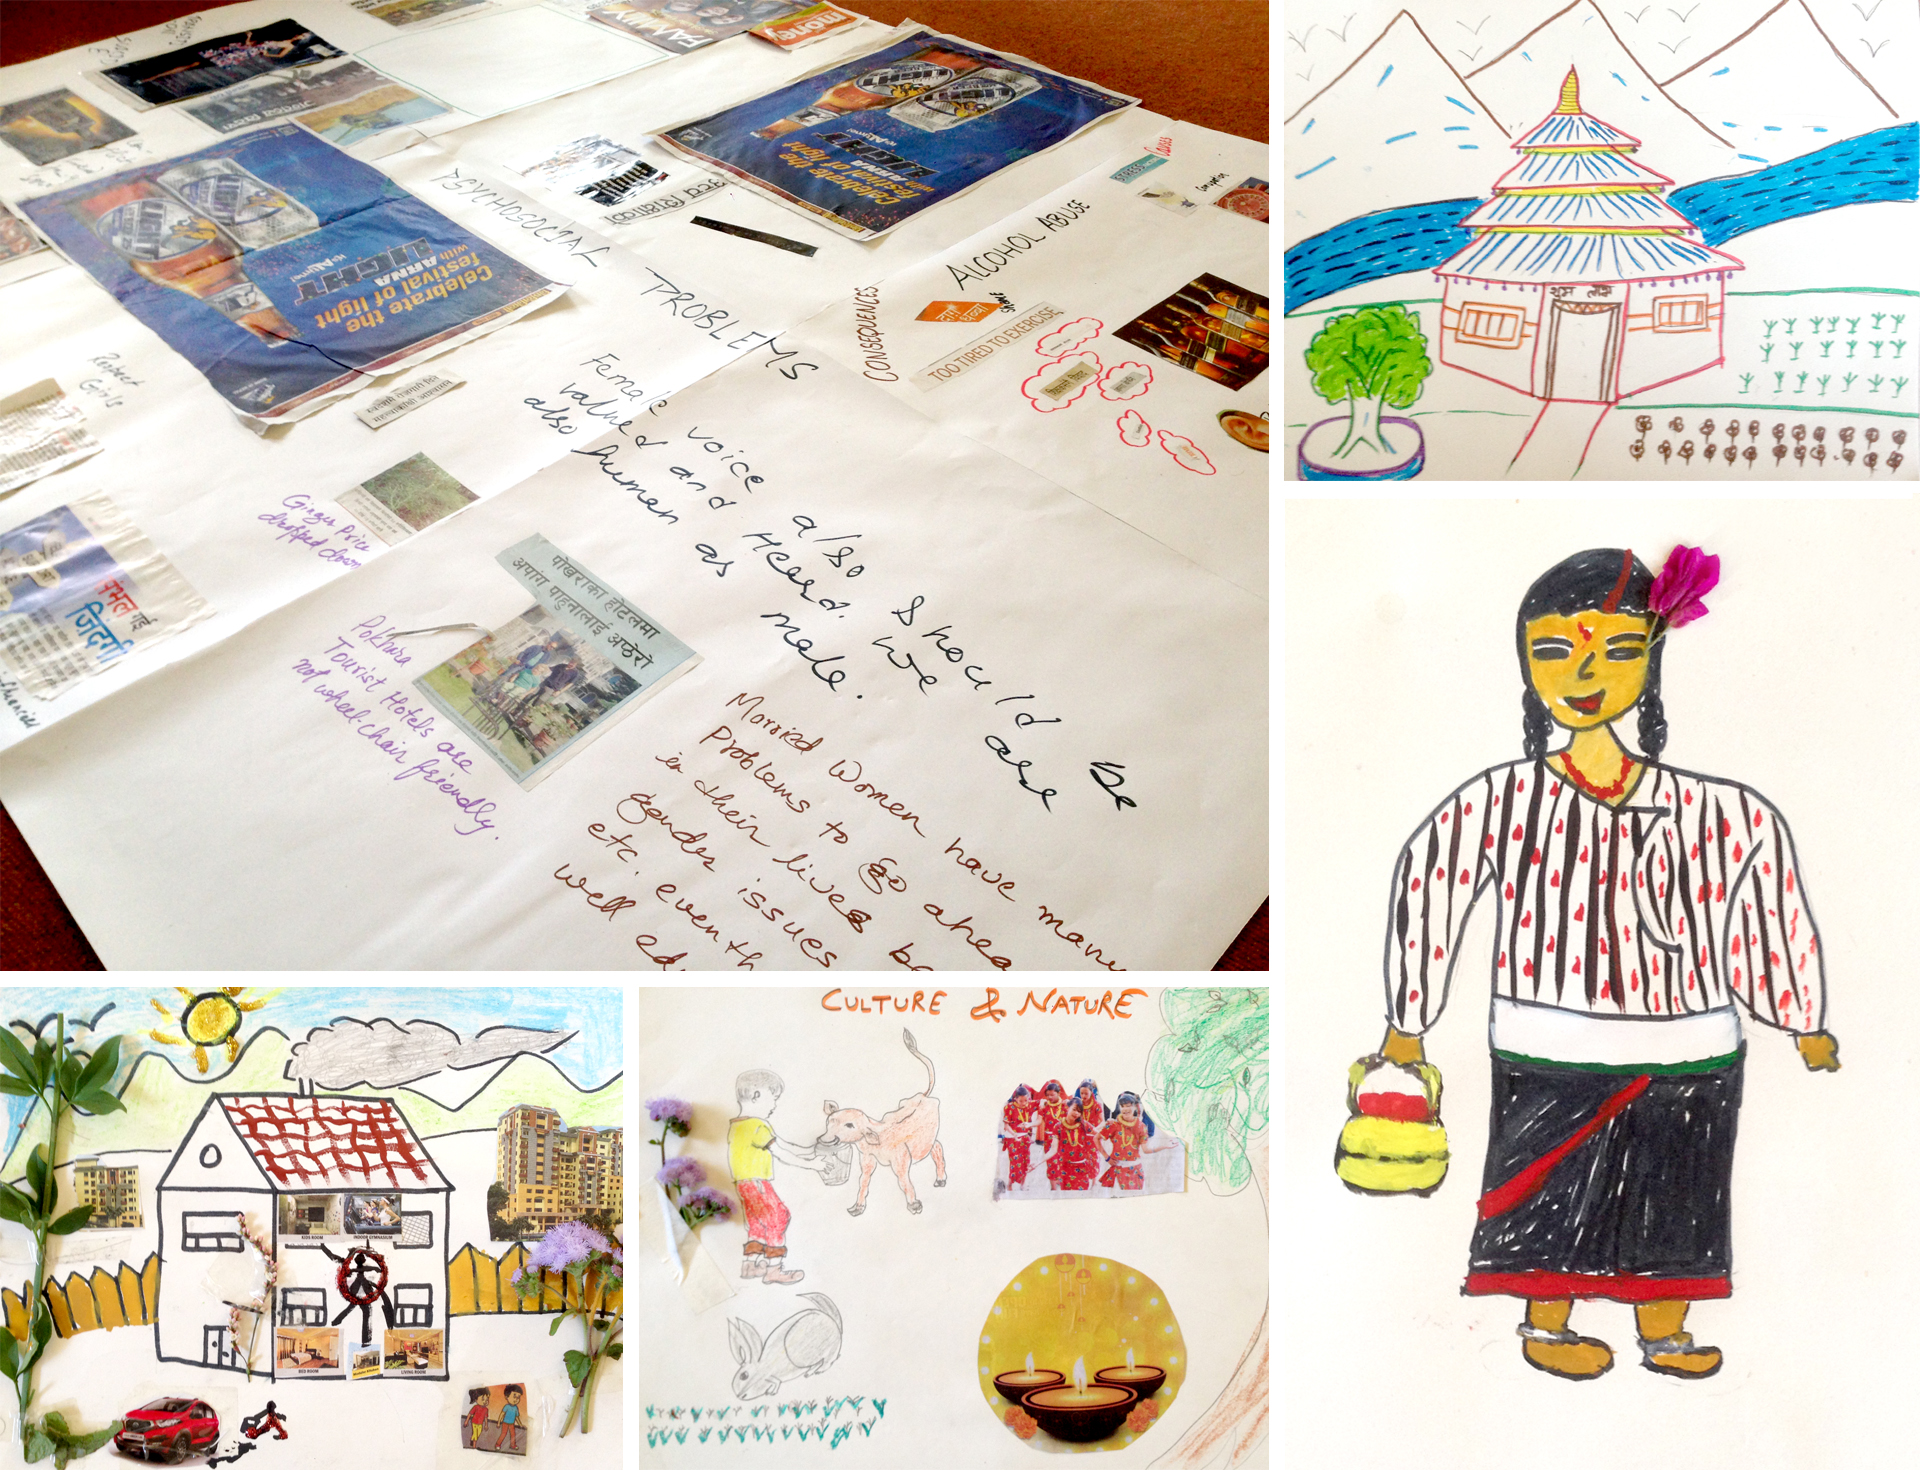 cl_project_nepal2017